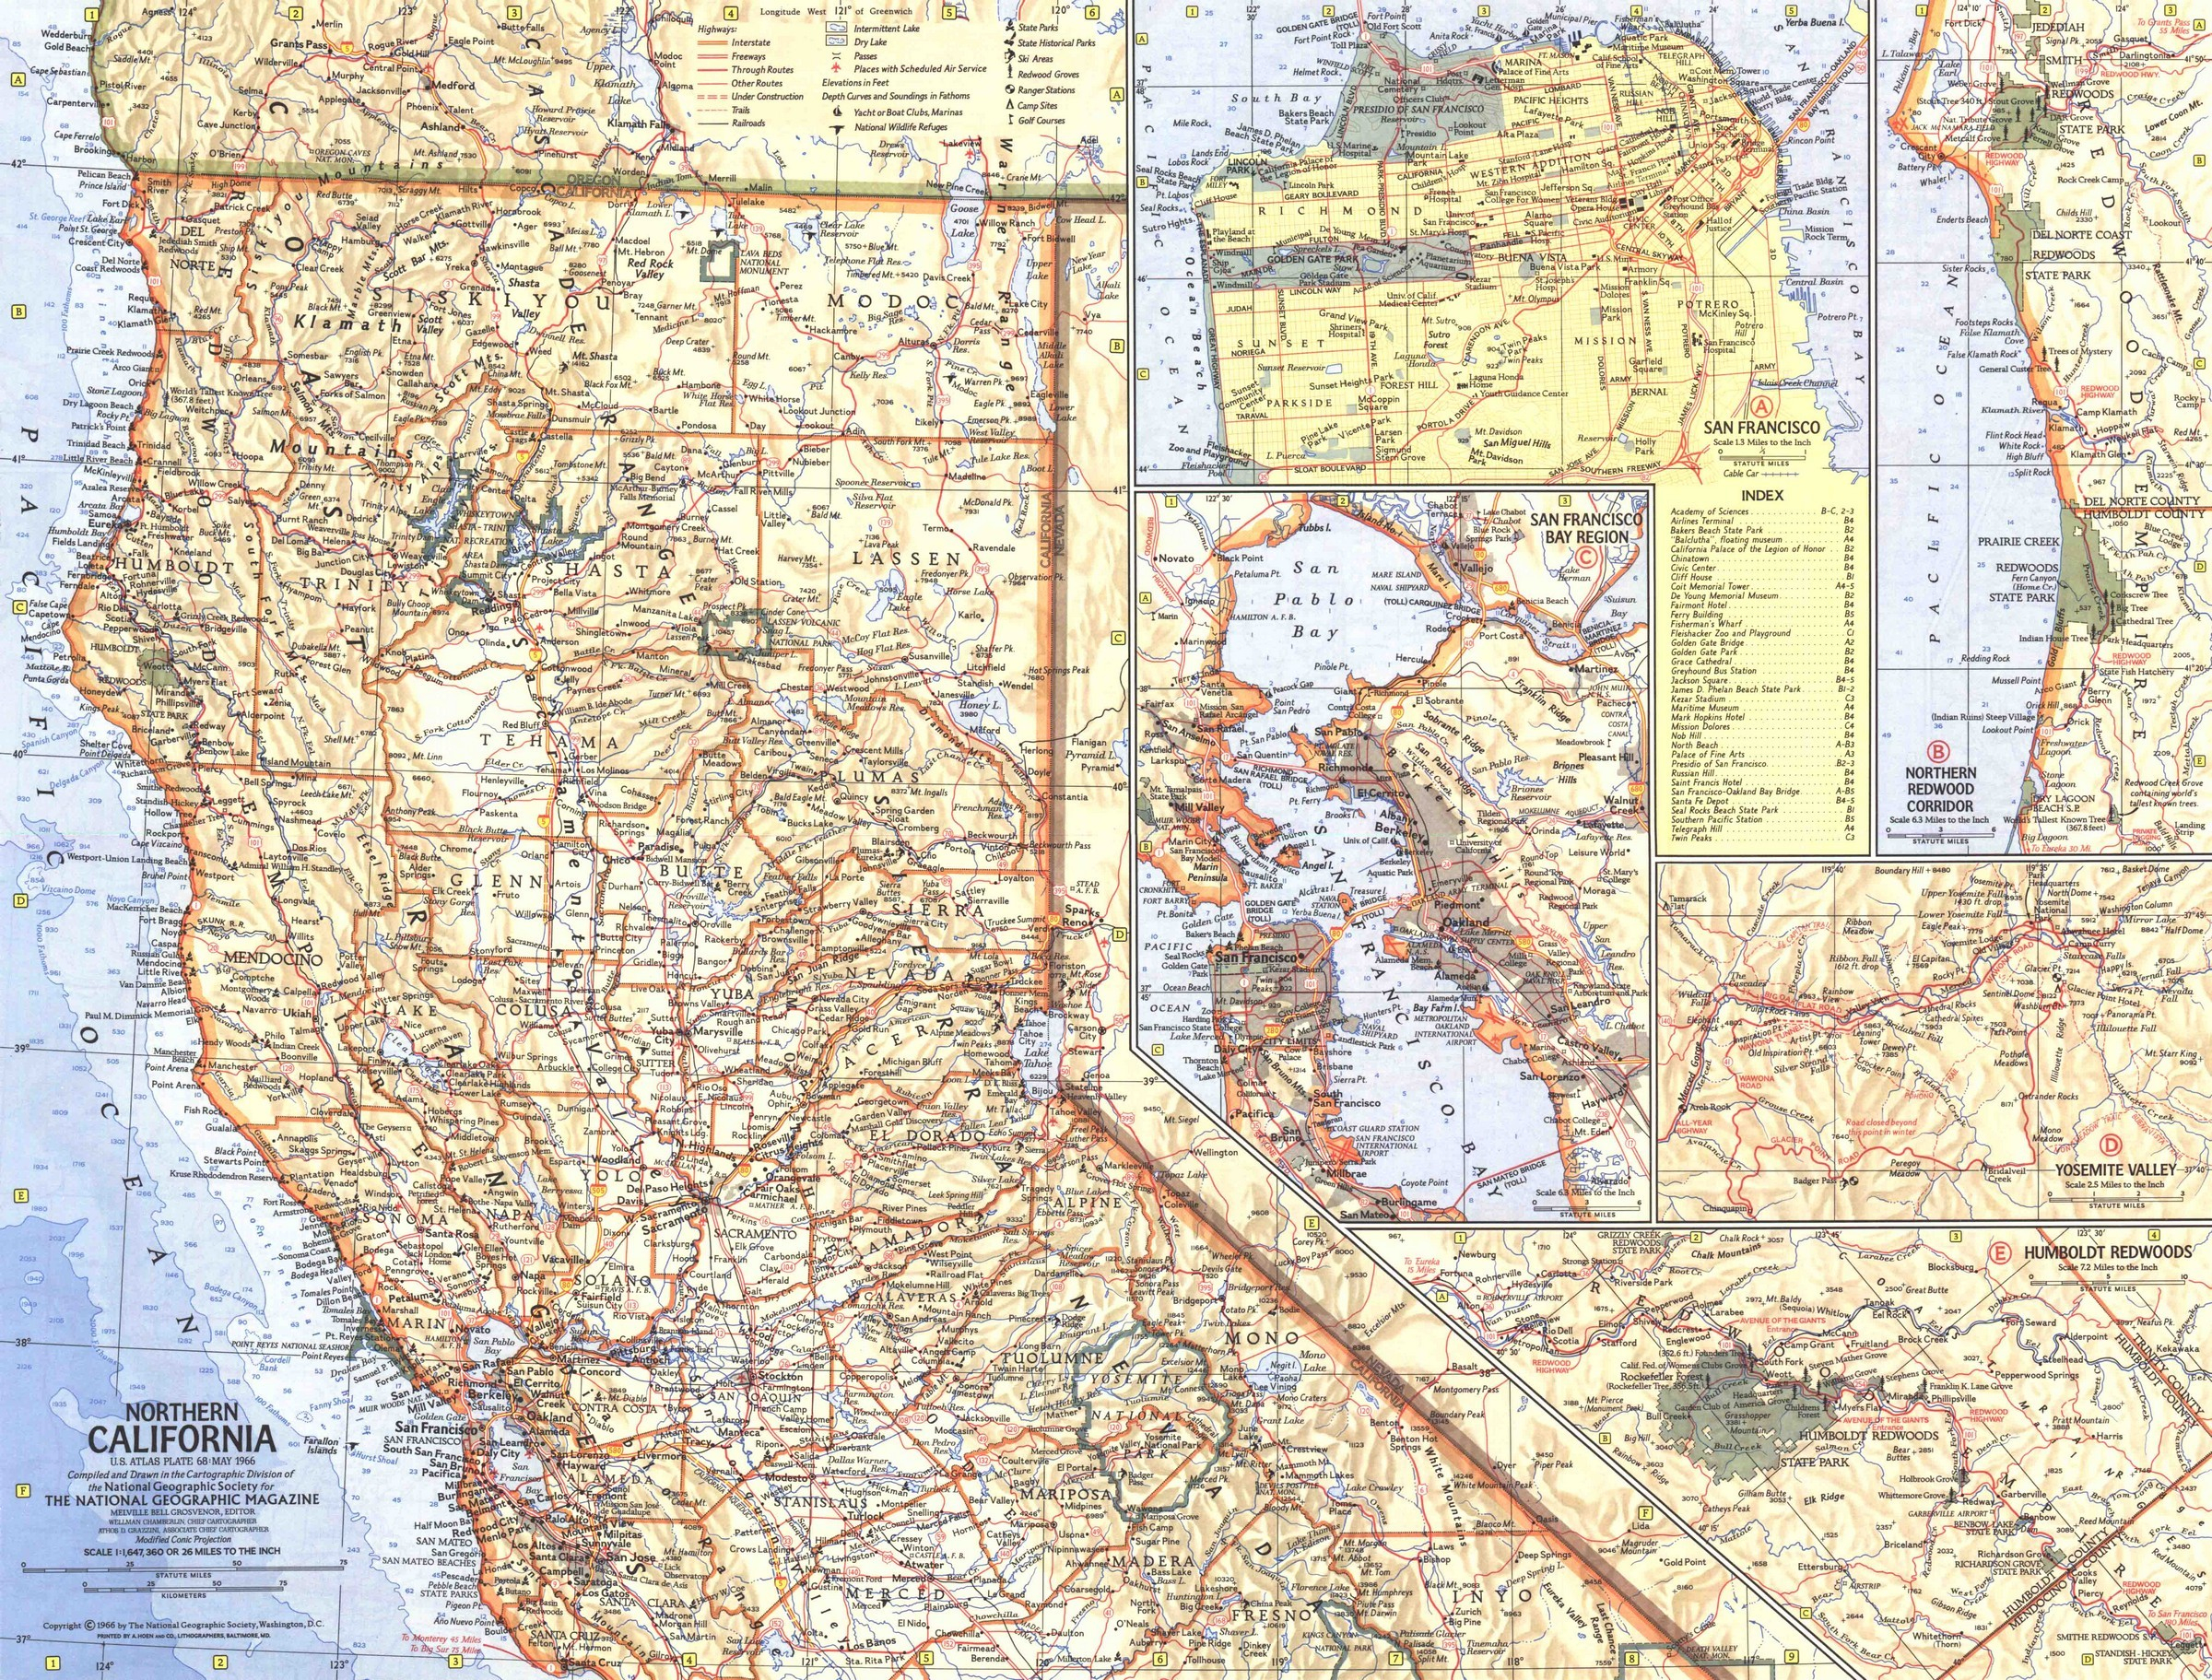 National Geographic Northern California Map 1966 - Maps - National Geographic Maps California